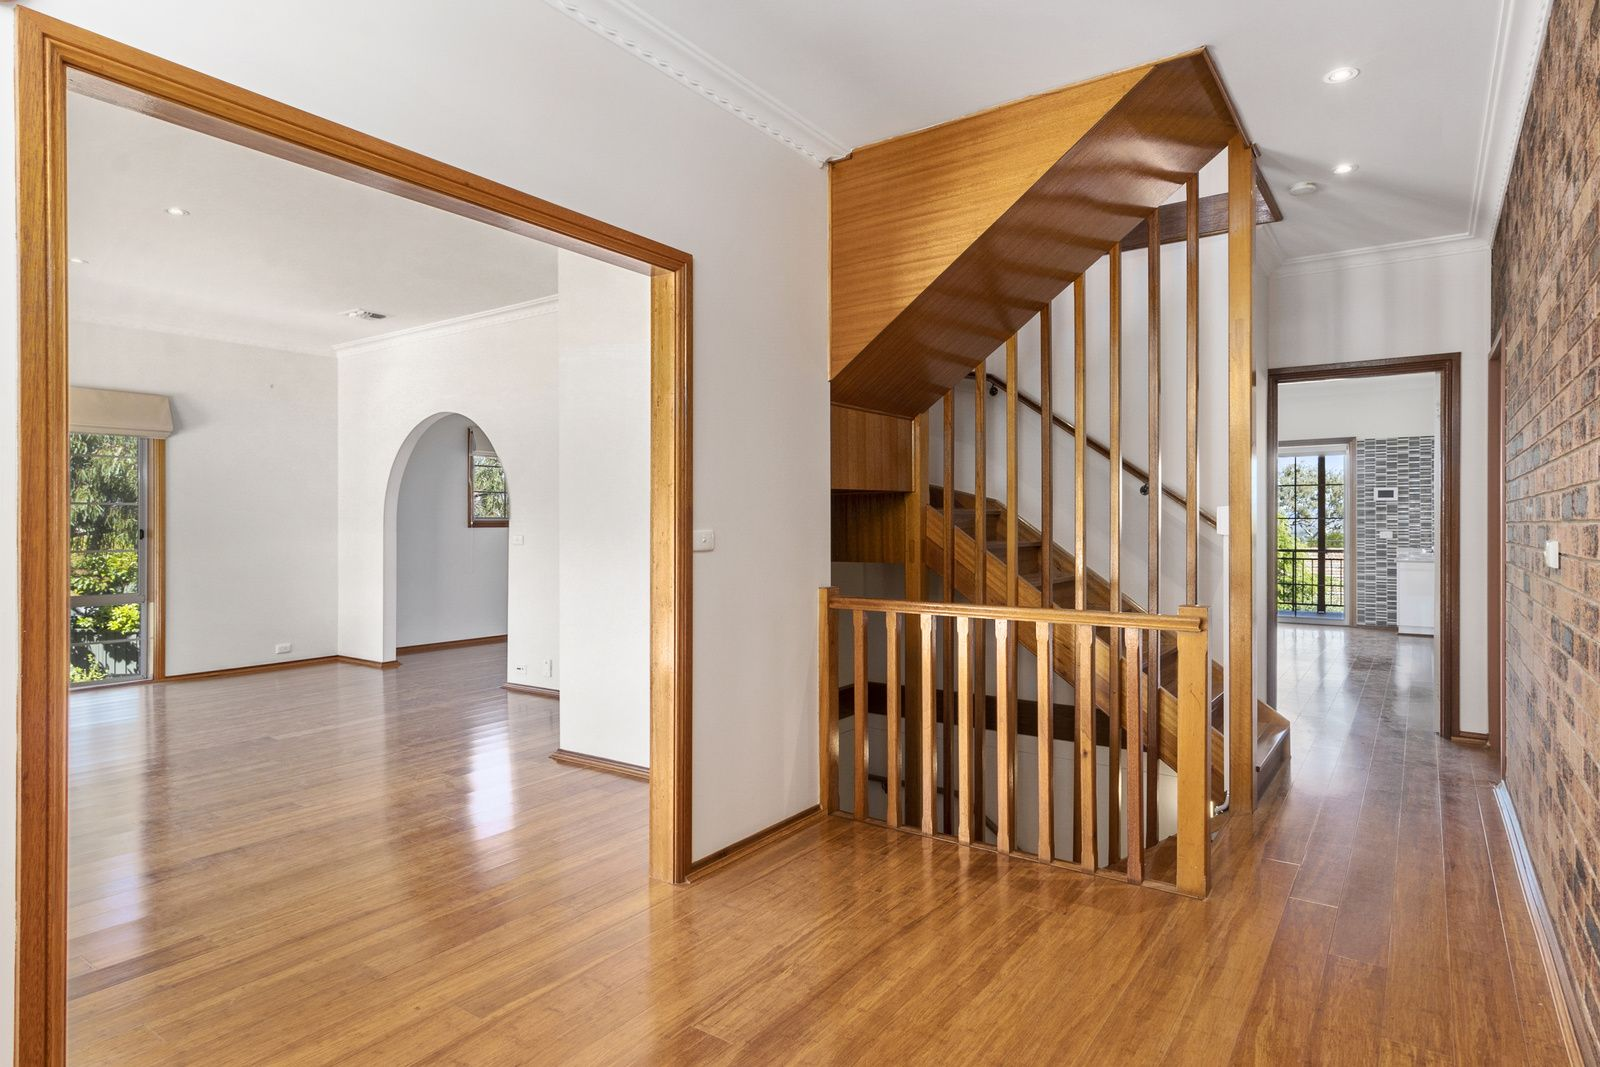 3 Story Place, Isaacs ACT 2607, Image 2